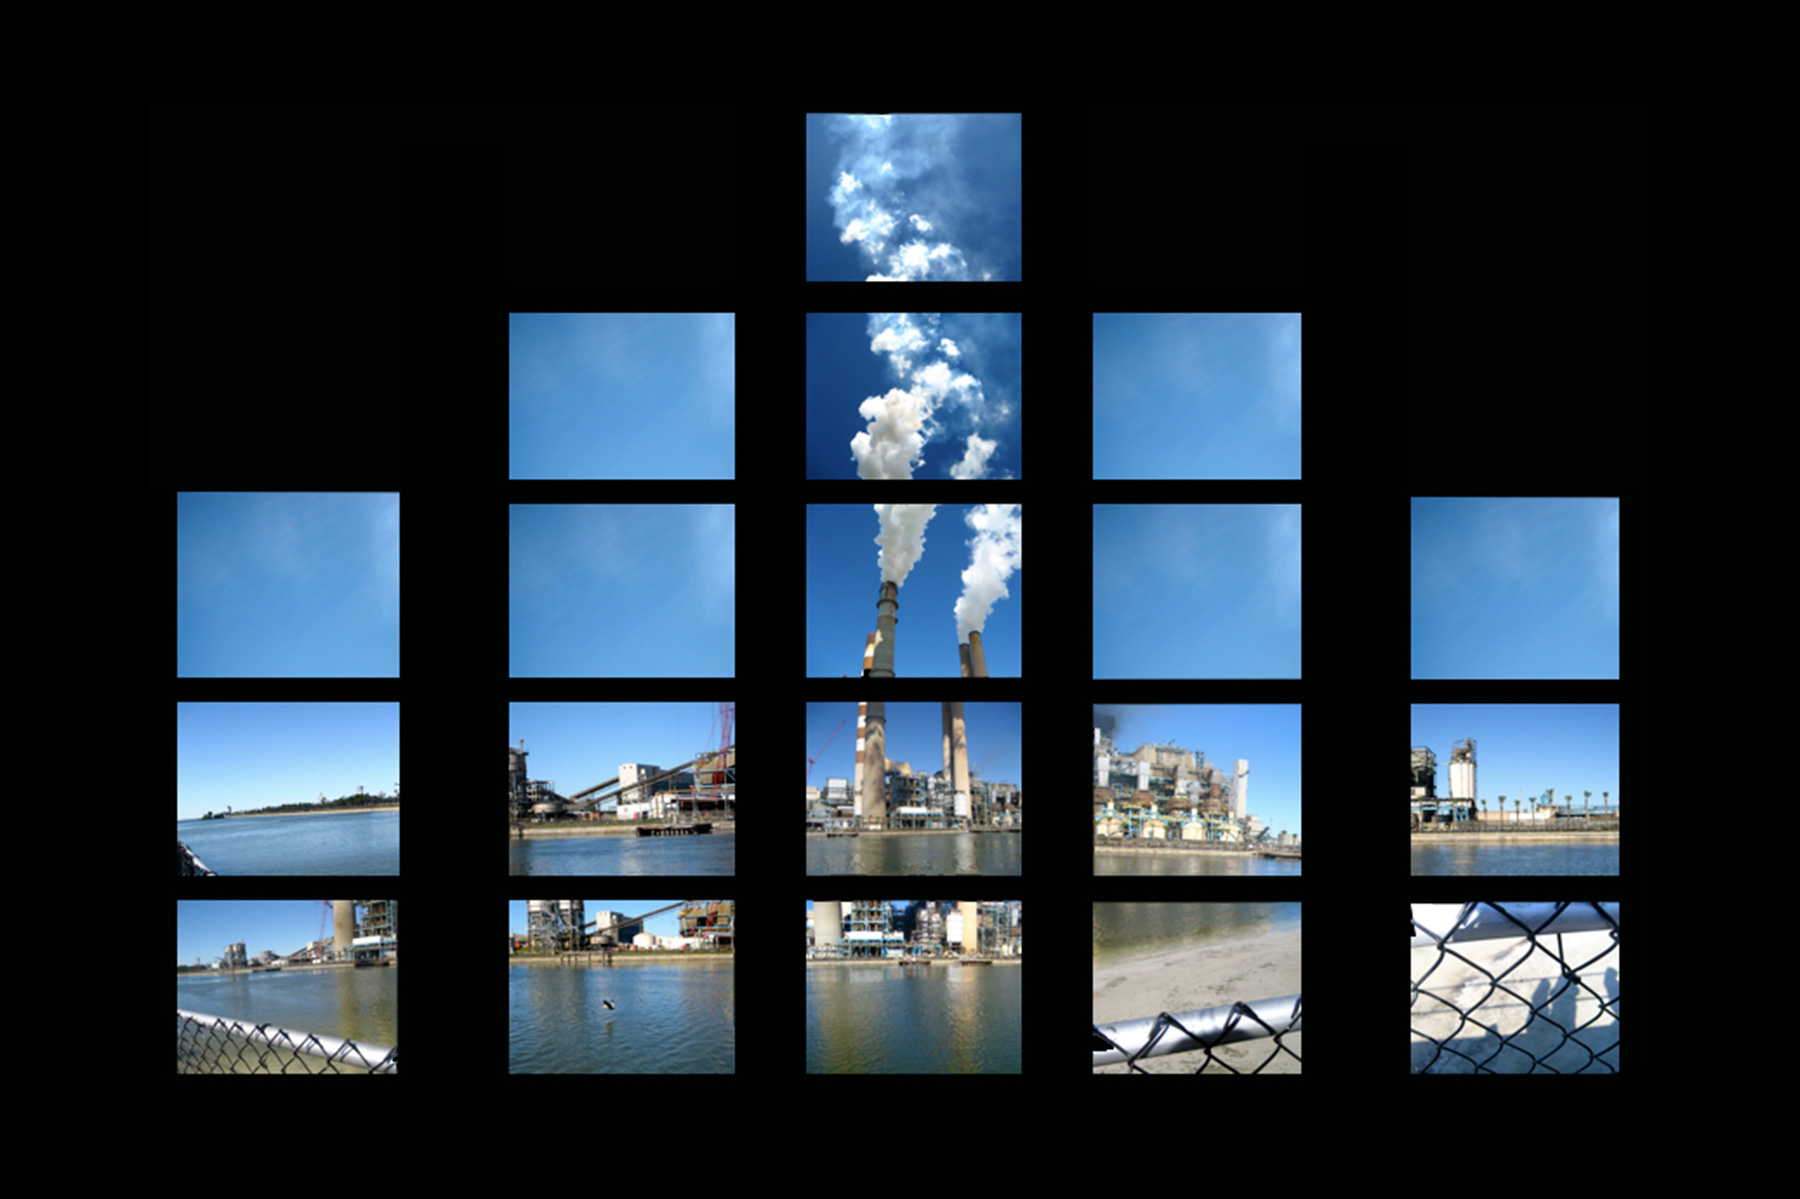 Photo collage of a phosphate plant